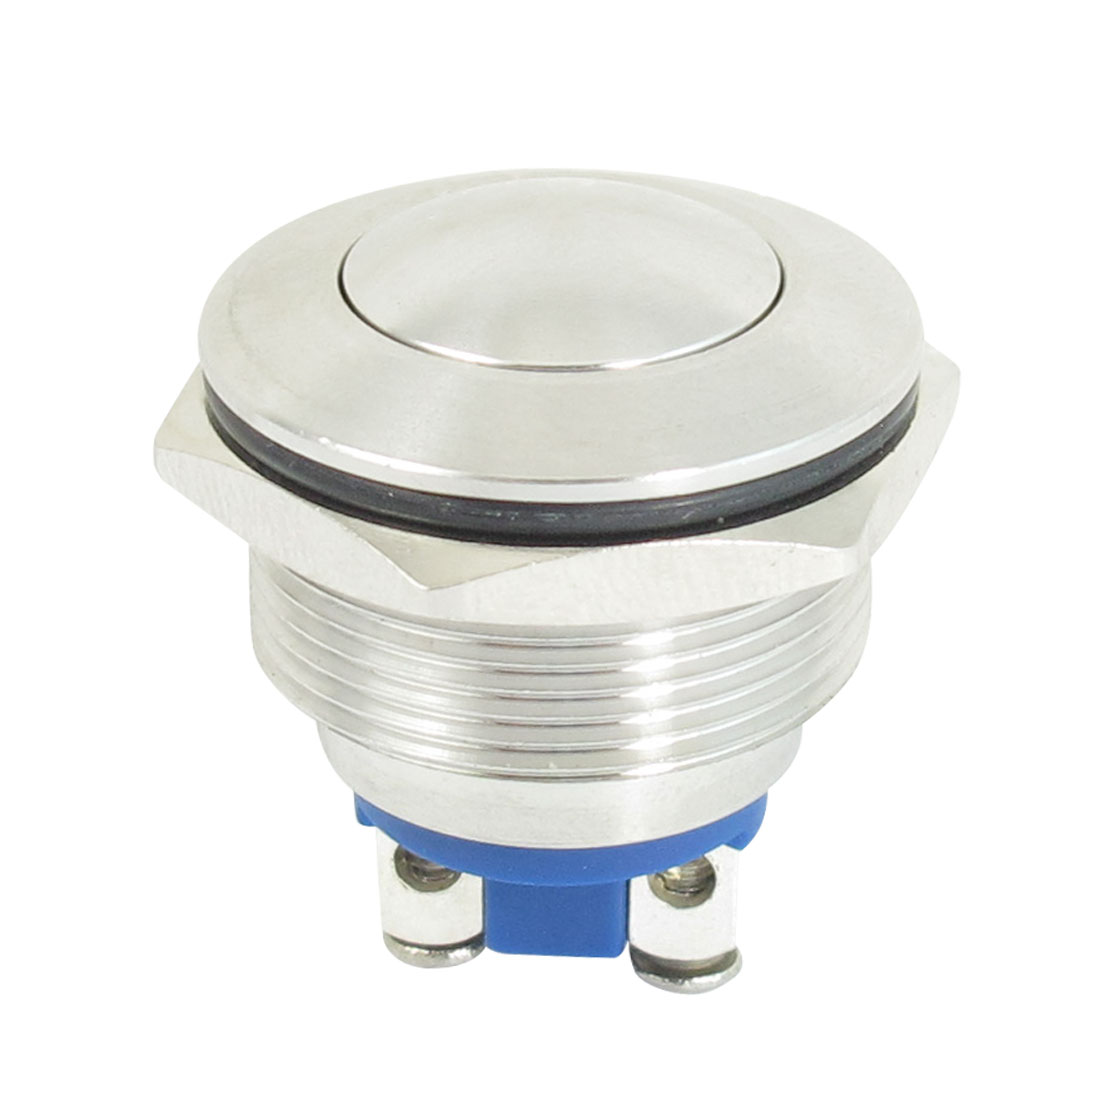 22mm Flush Mounted Momentary SPST Silver Tone Stainless Round Push Button Switch